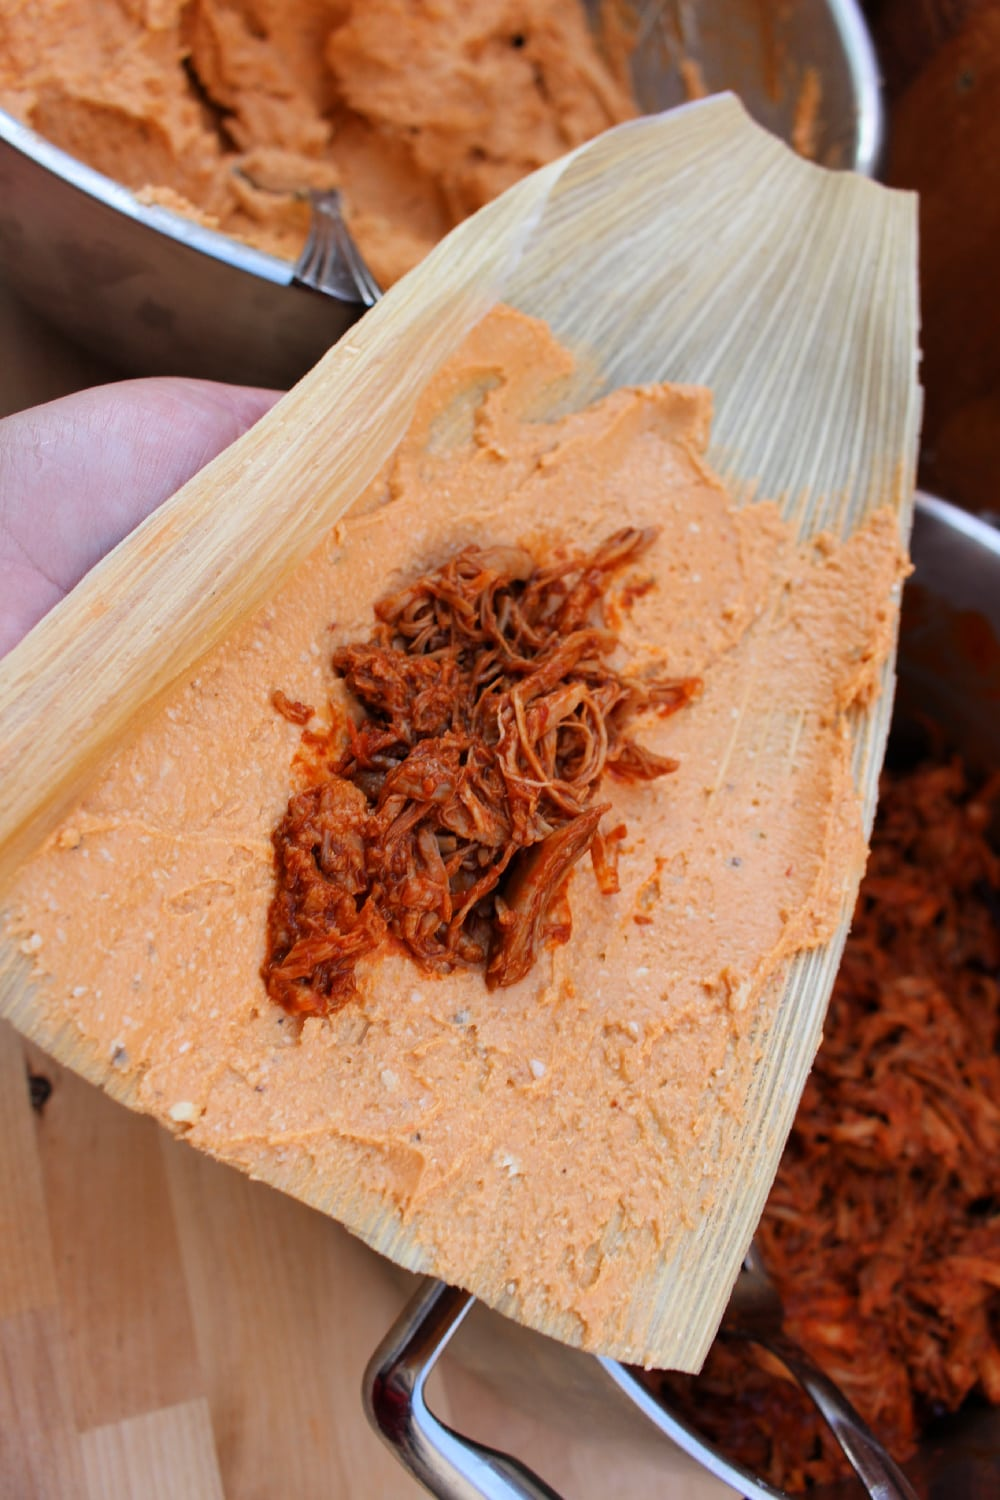 Pork in the center of the masa on a corn husk.